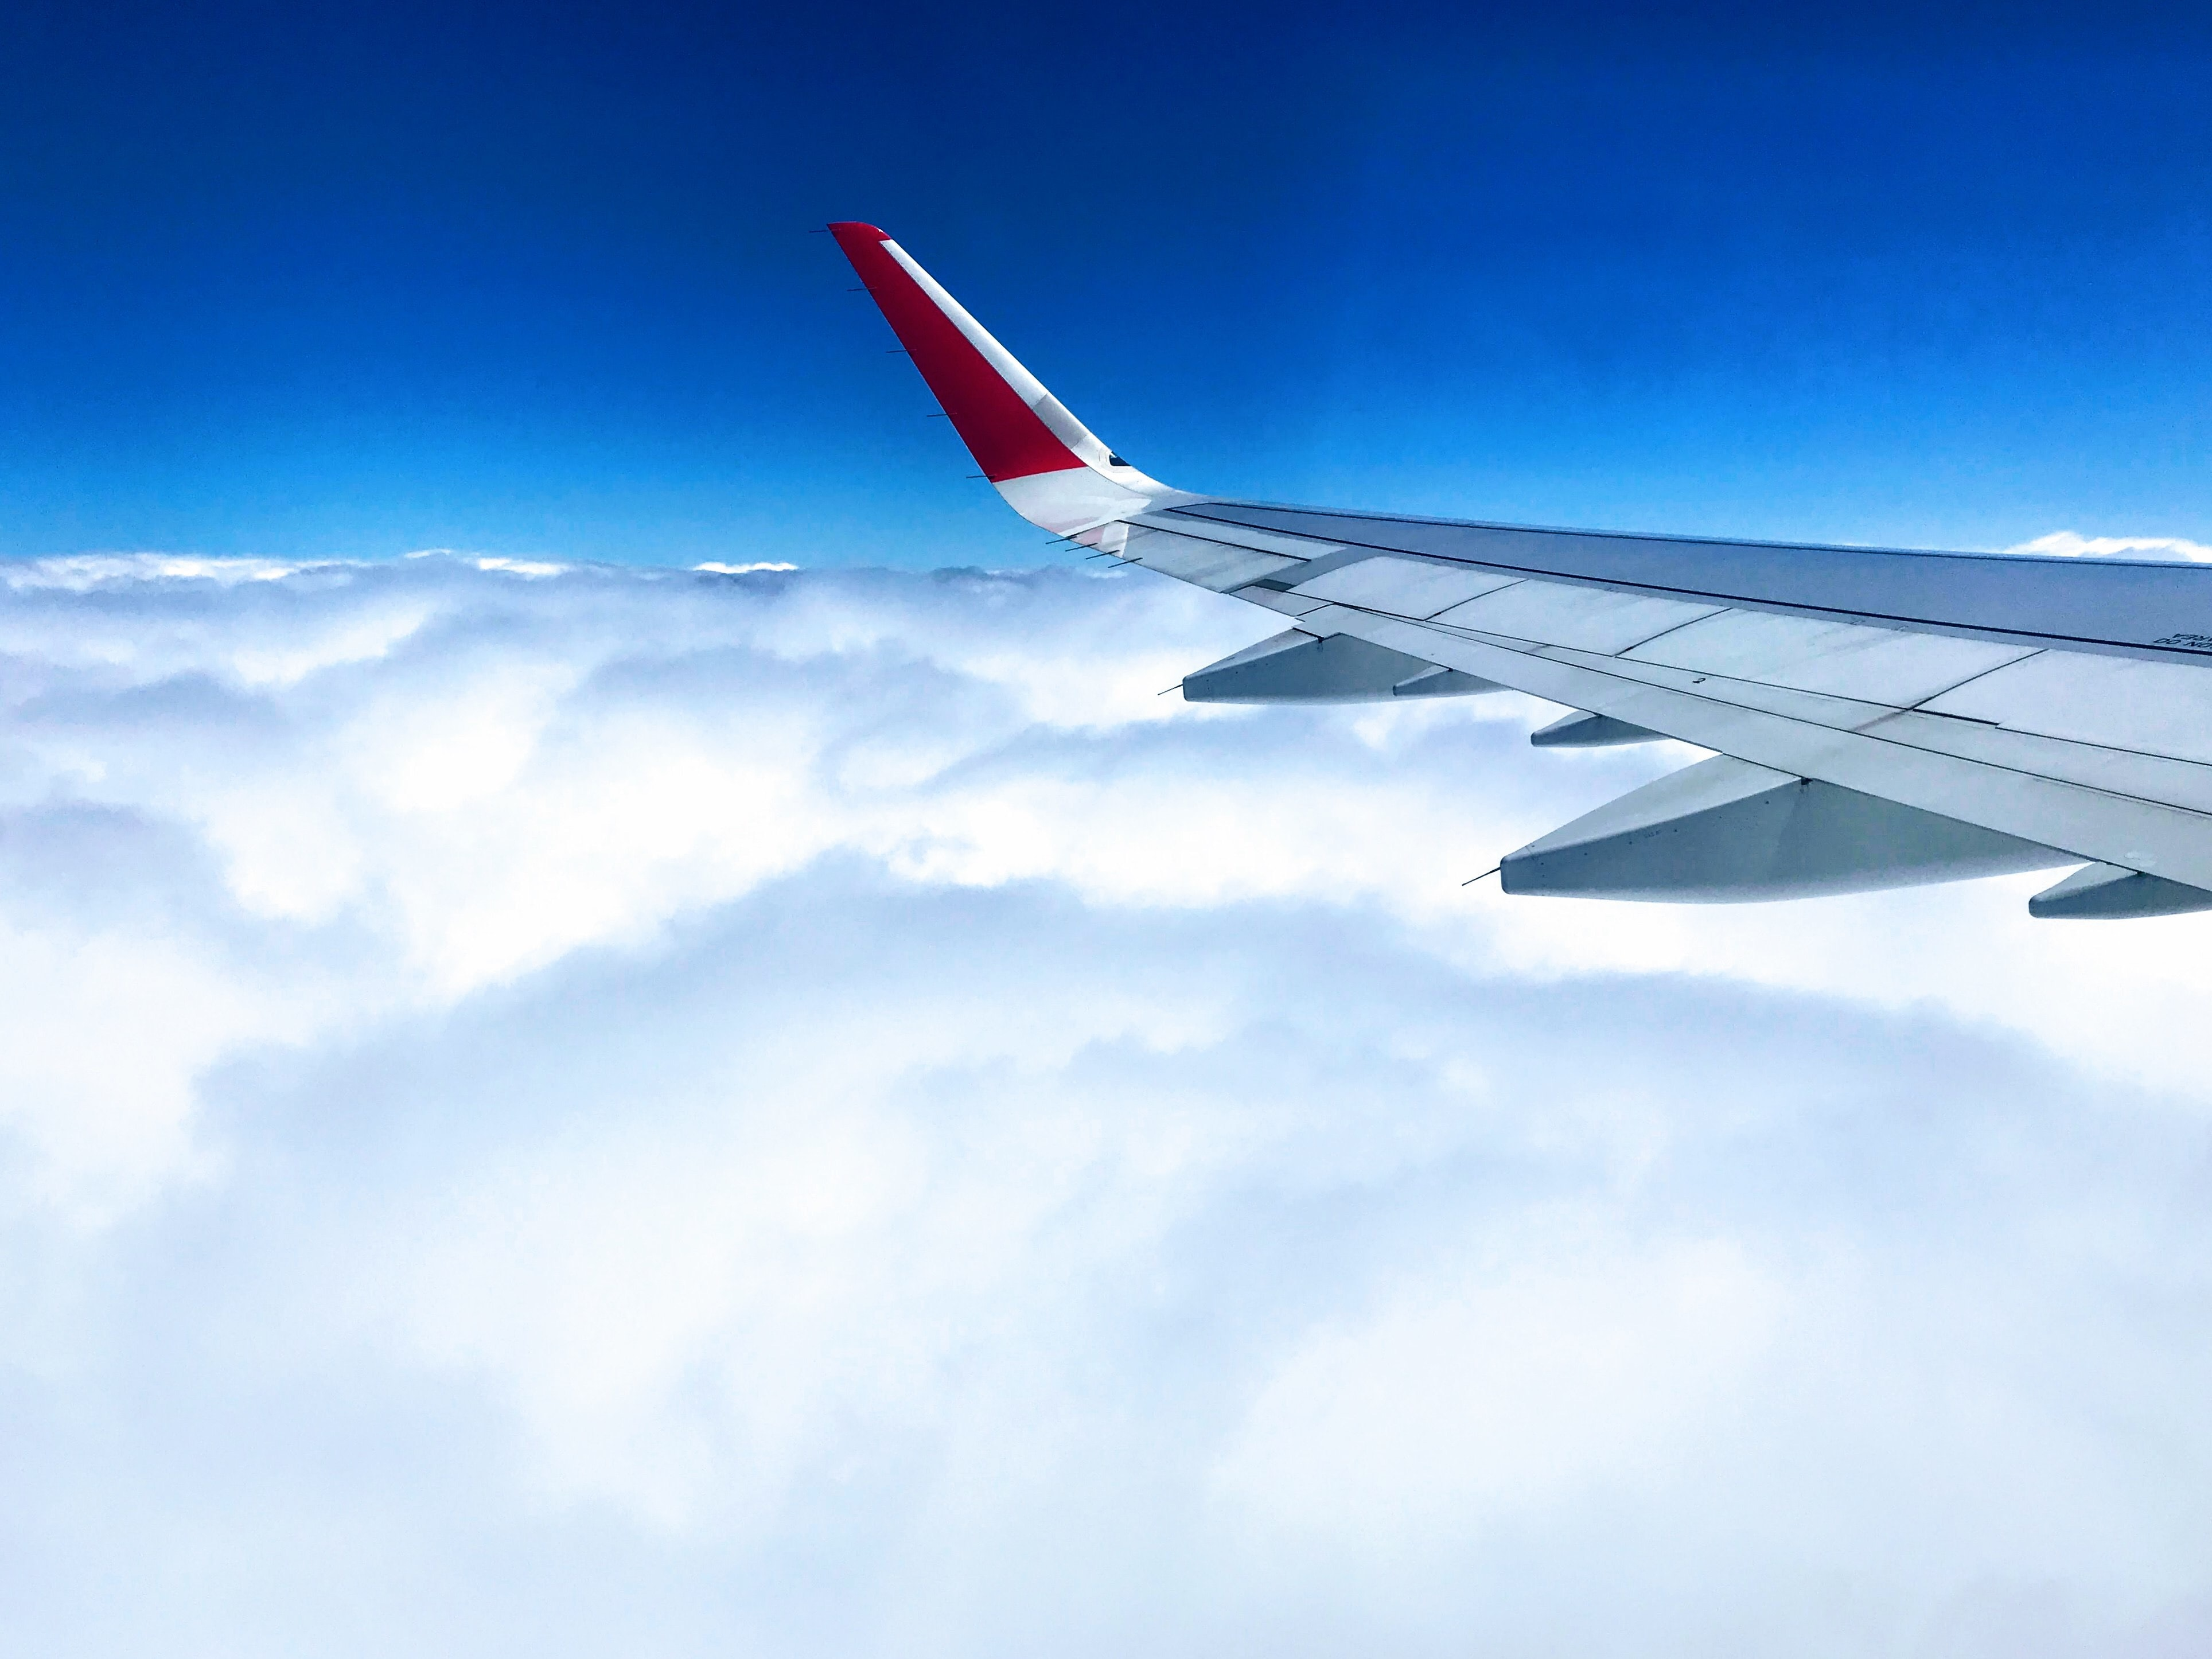 white and red airplane wing above cloudy skies